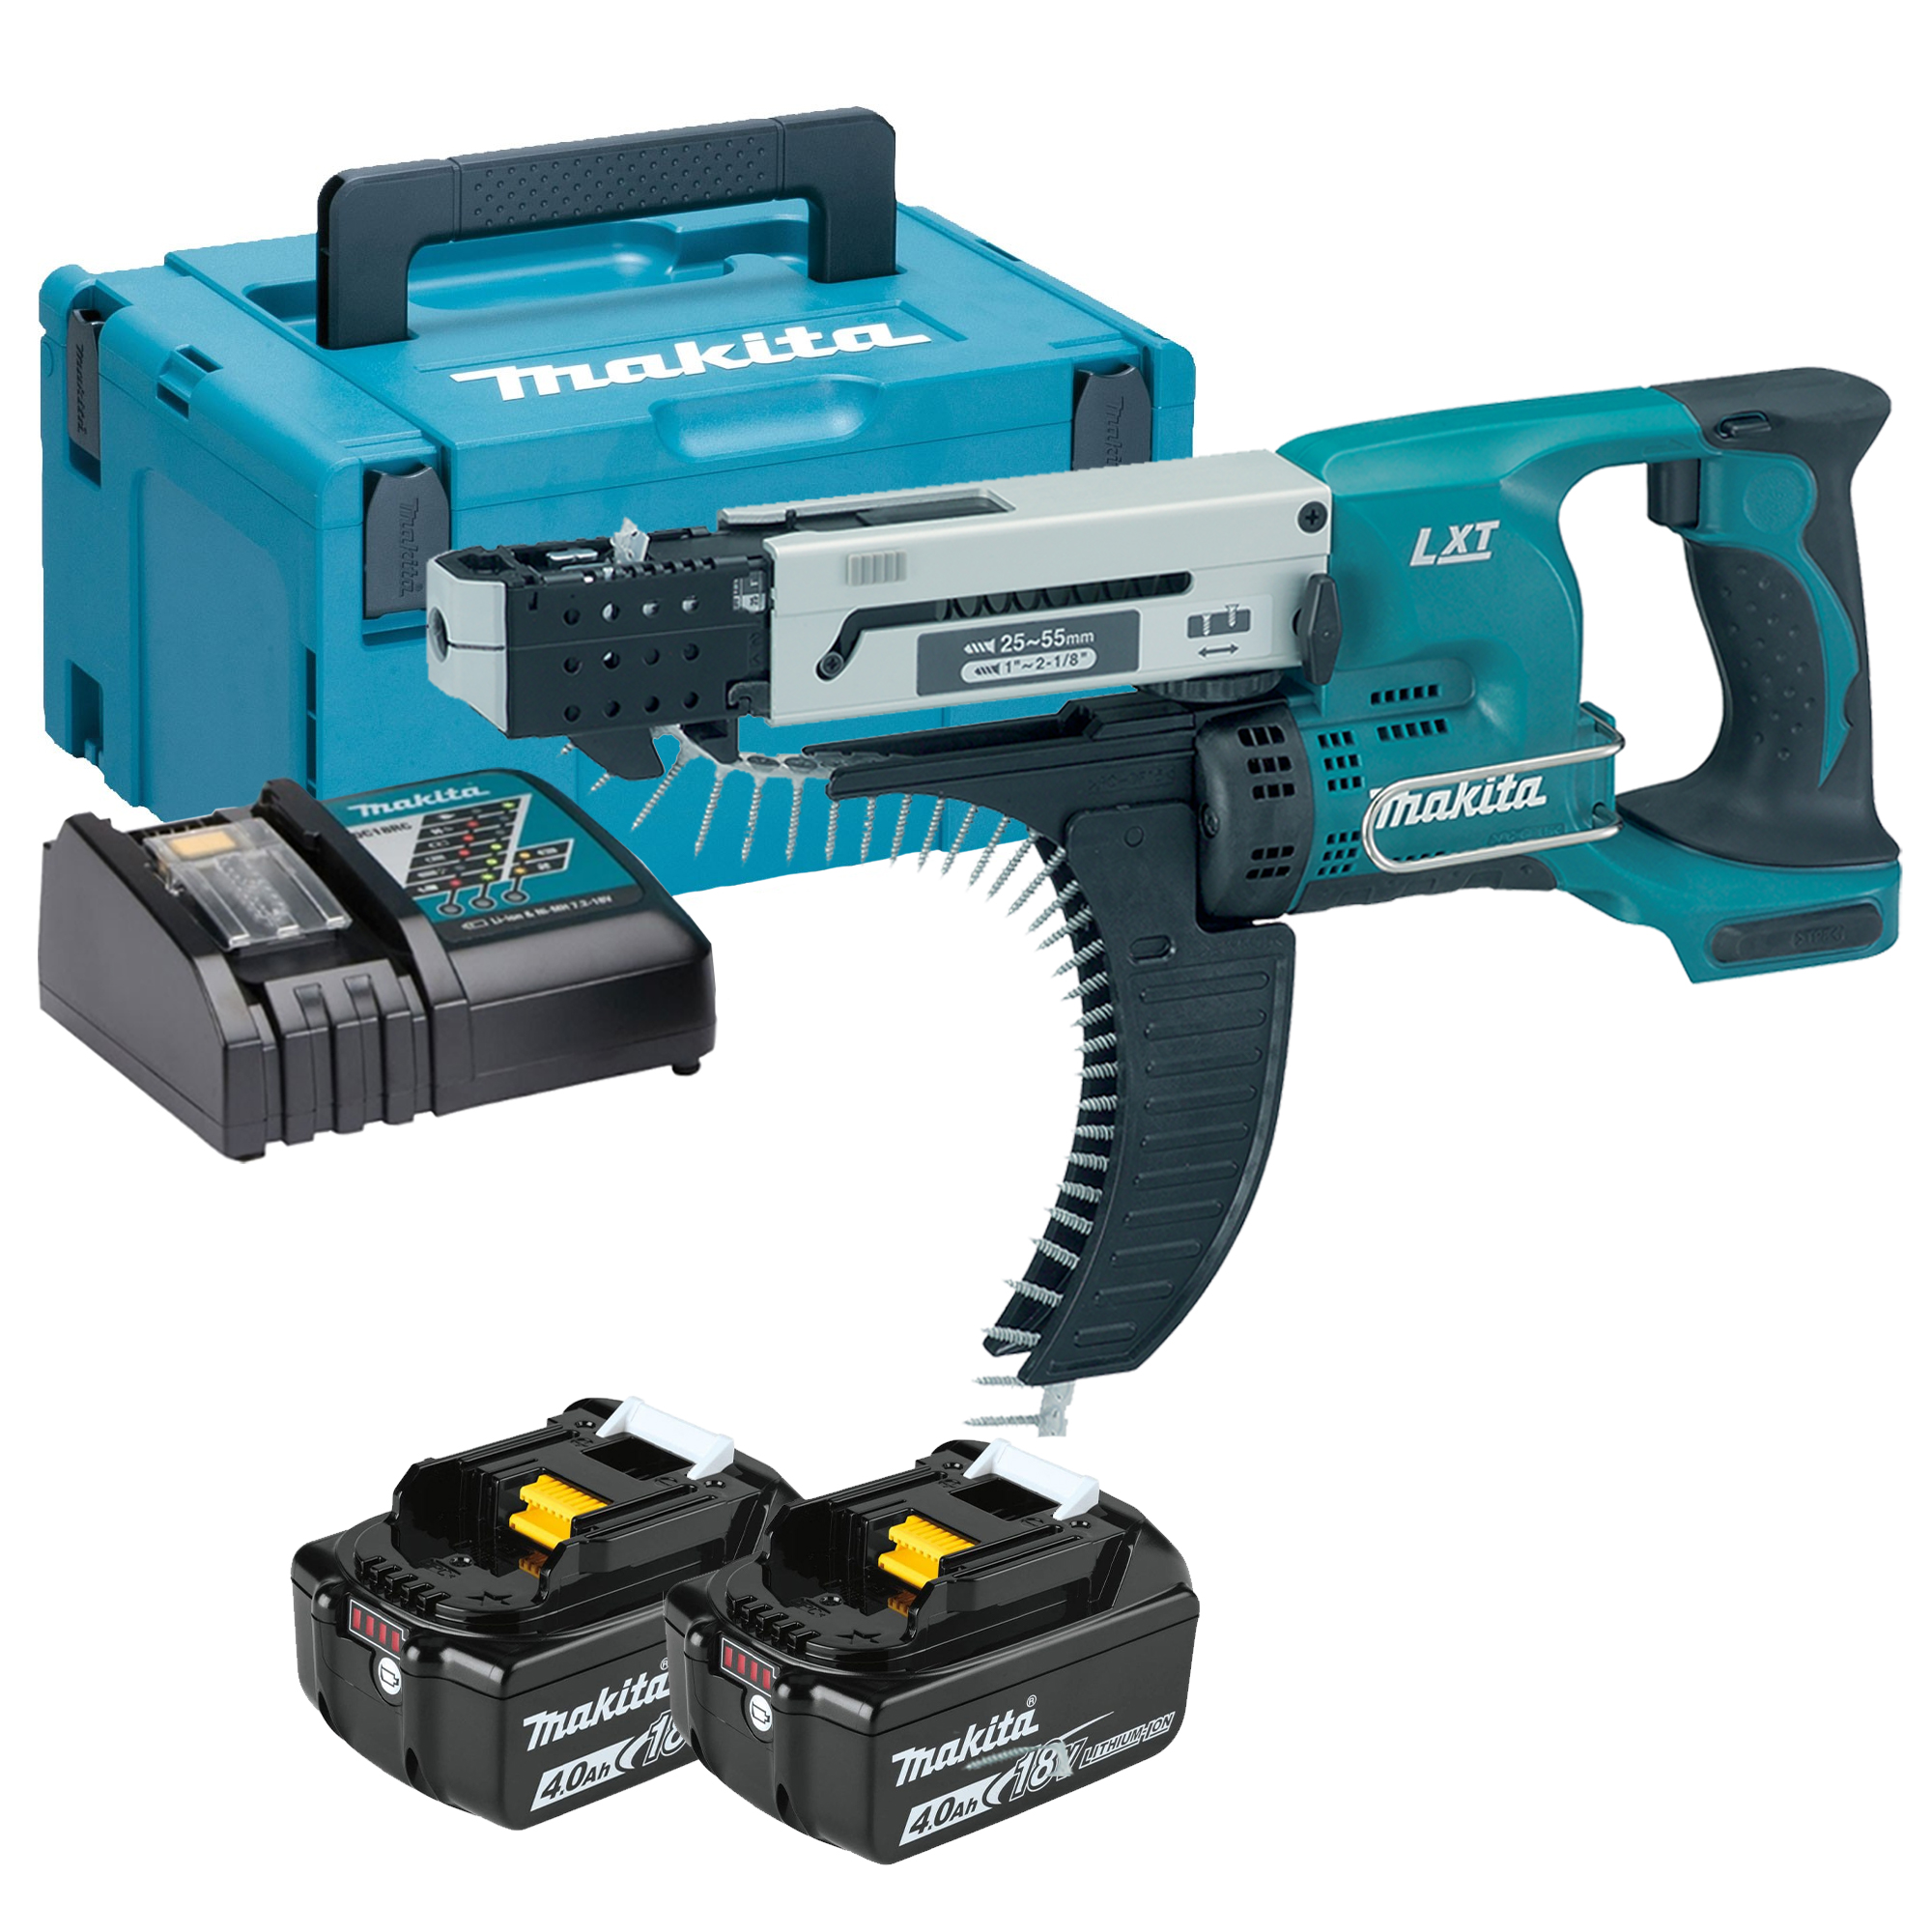 makita dfr550rmj 18v lxt 25 55mm auto feed screwdriver with 2 x 4ah batteries charger and case